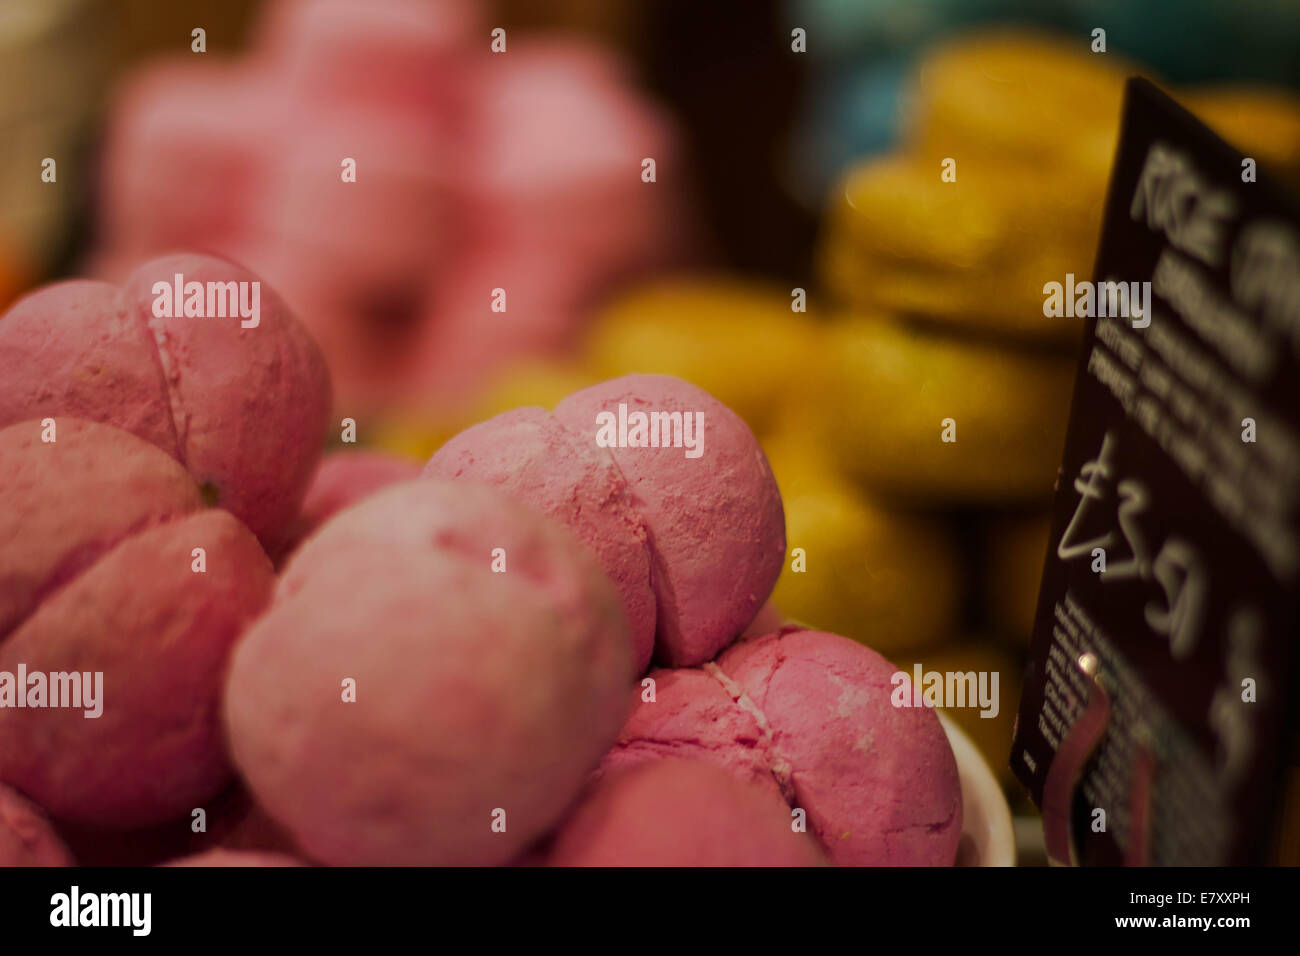 Bath bombs on display in a shop. - Stock Image